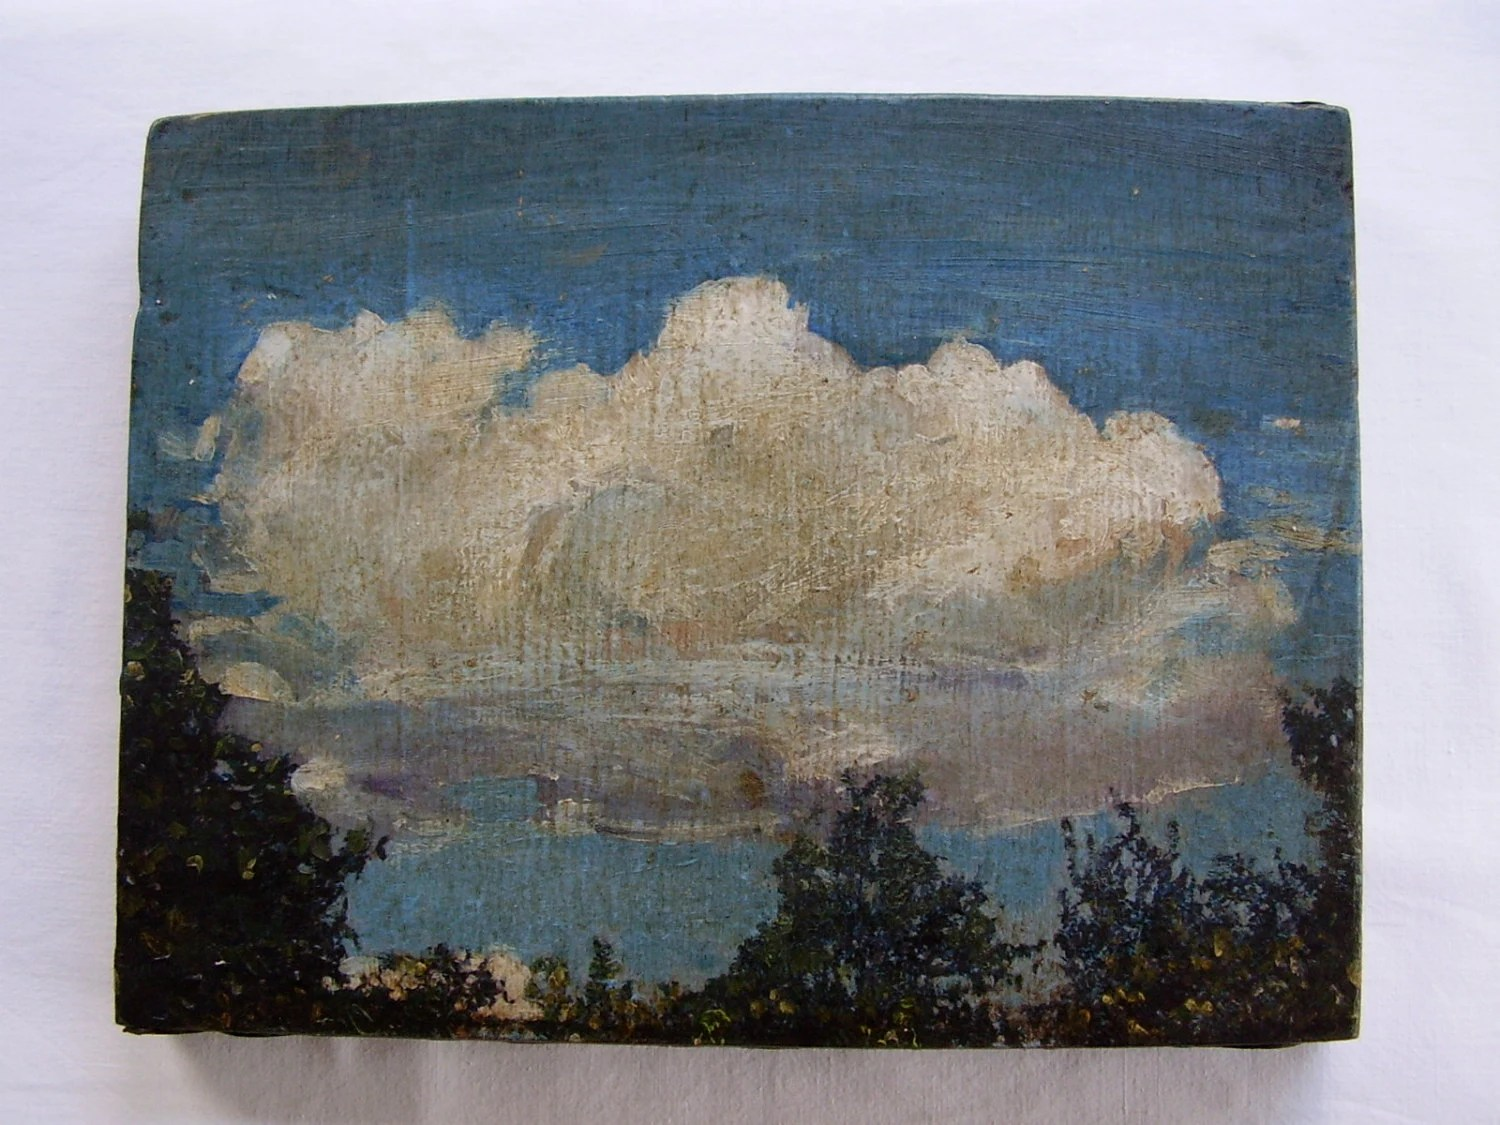 Antique 19th C Follower John Constable RA British 1776-1837 Hampstead Heath Cumulus Cloud Sky Tree Study Landscape Oil Painting Sketch Panel - TheLovelyJumble